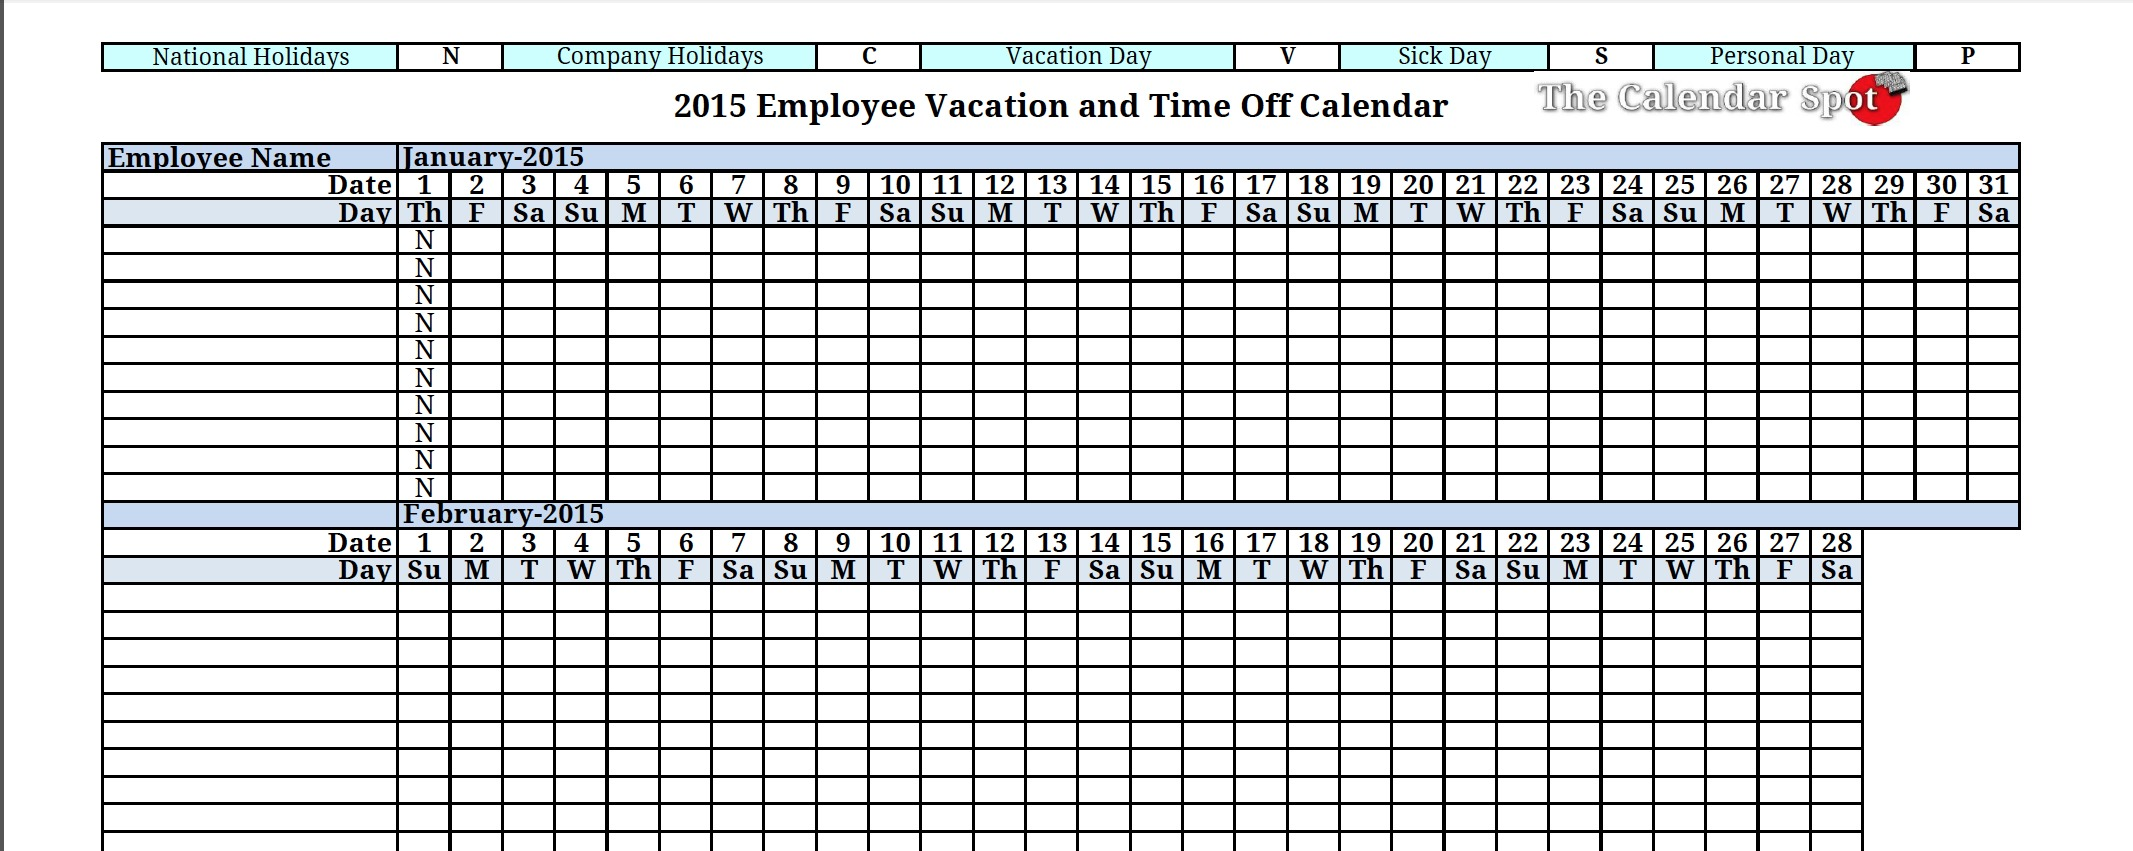 Employee Vacation Planner2.